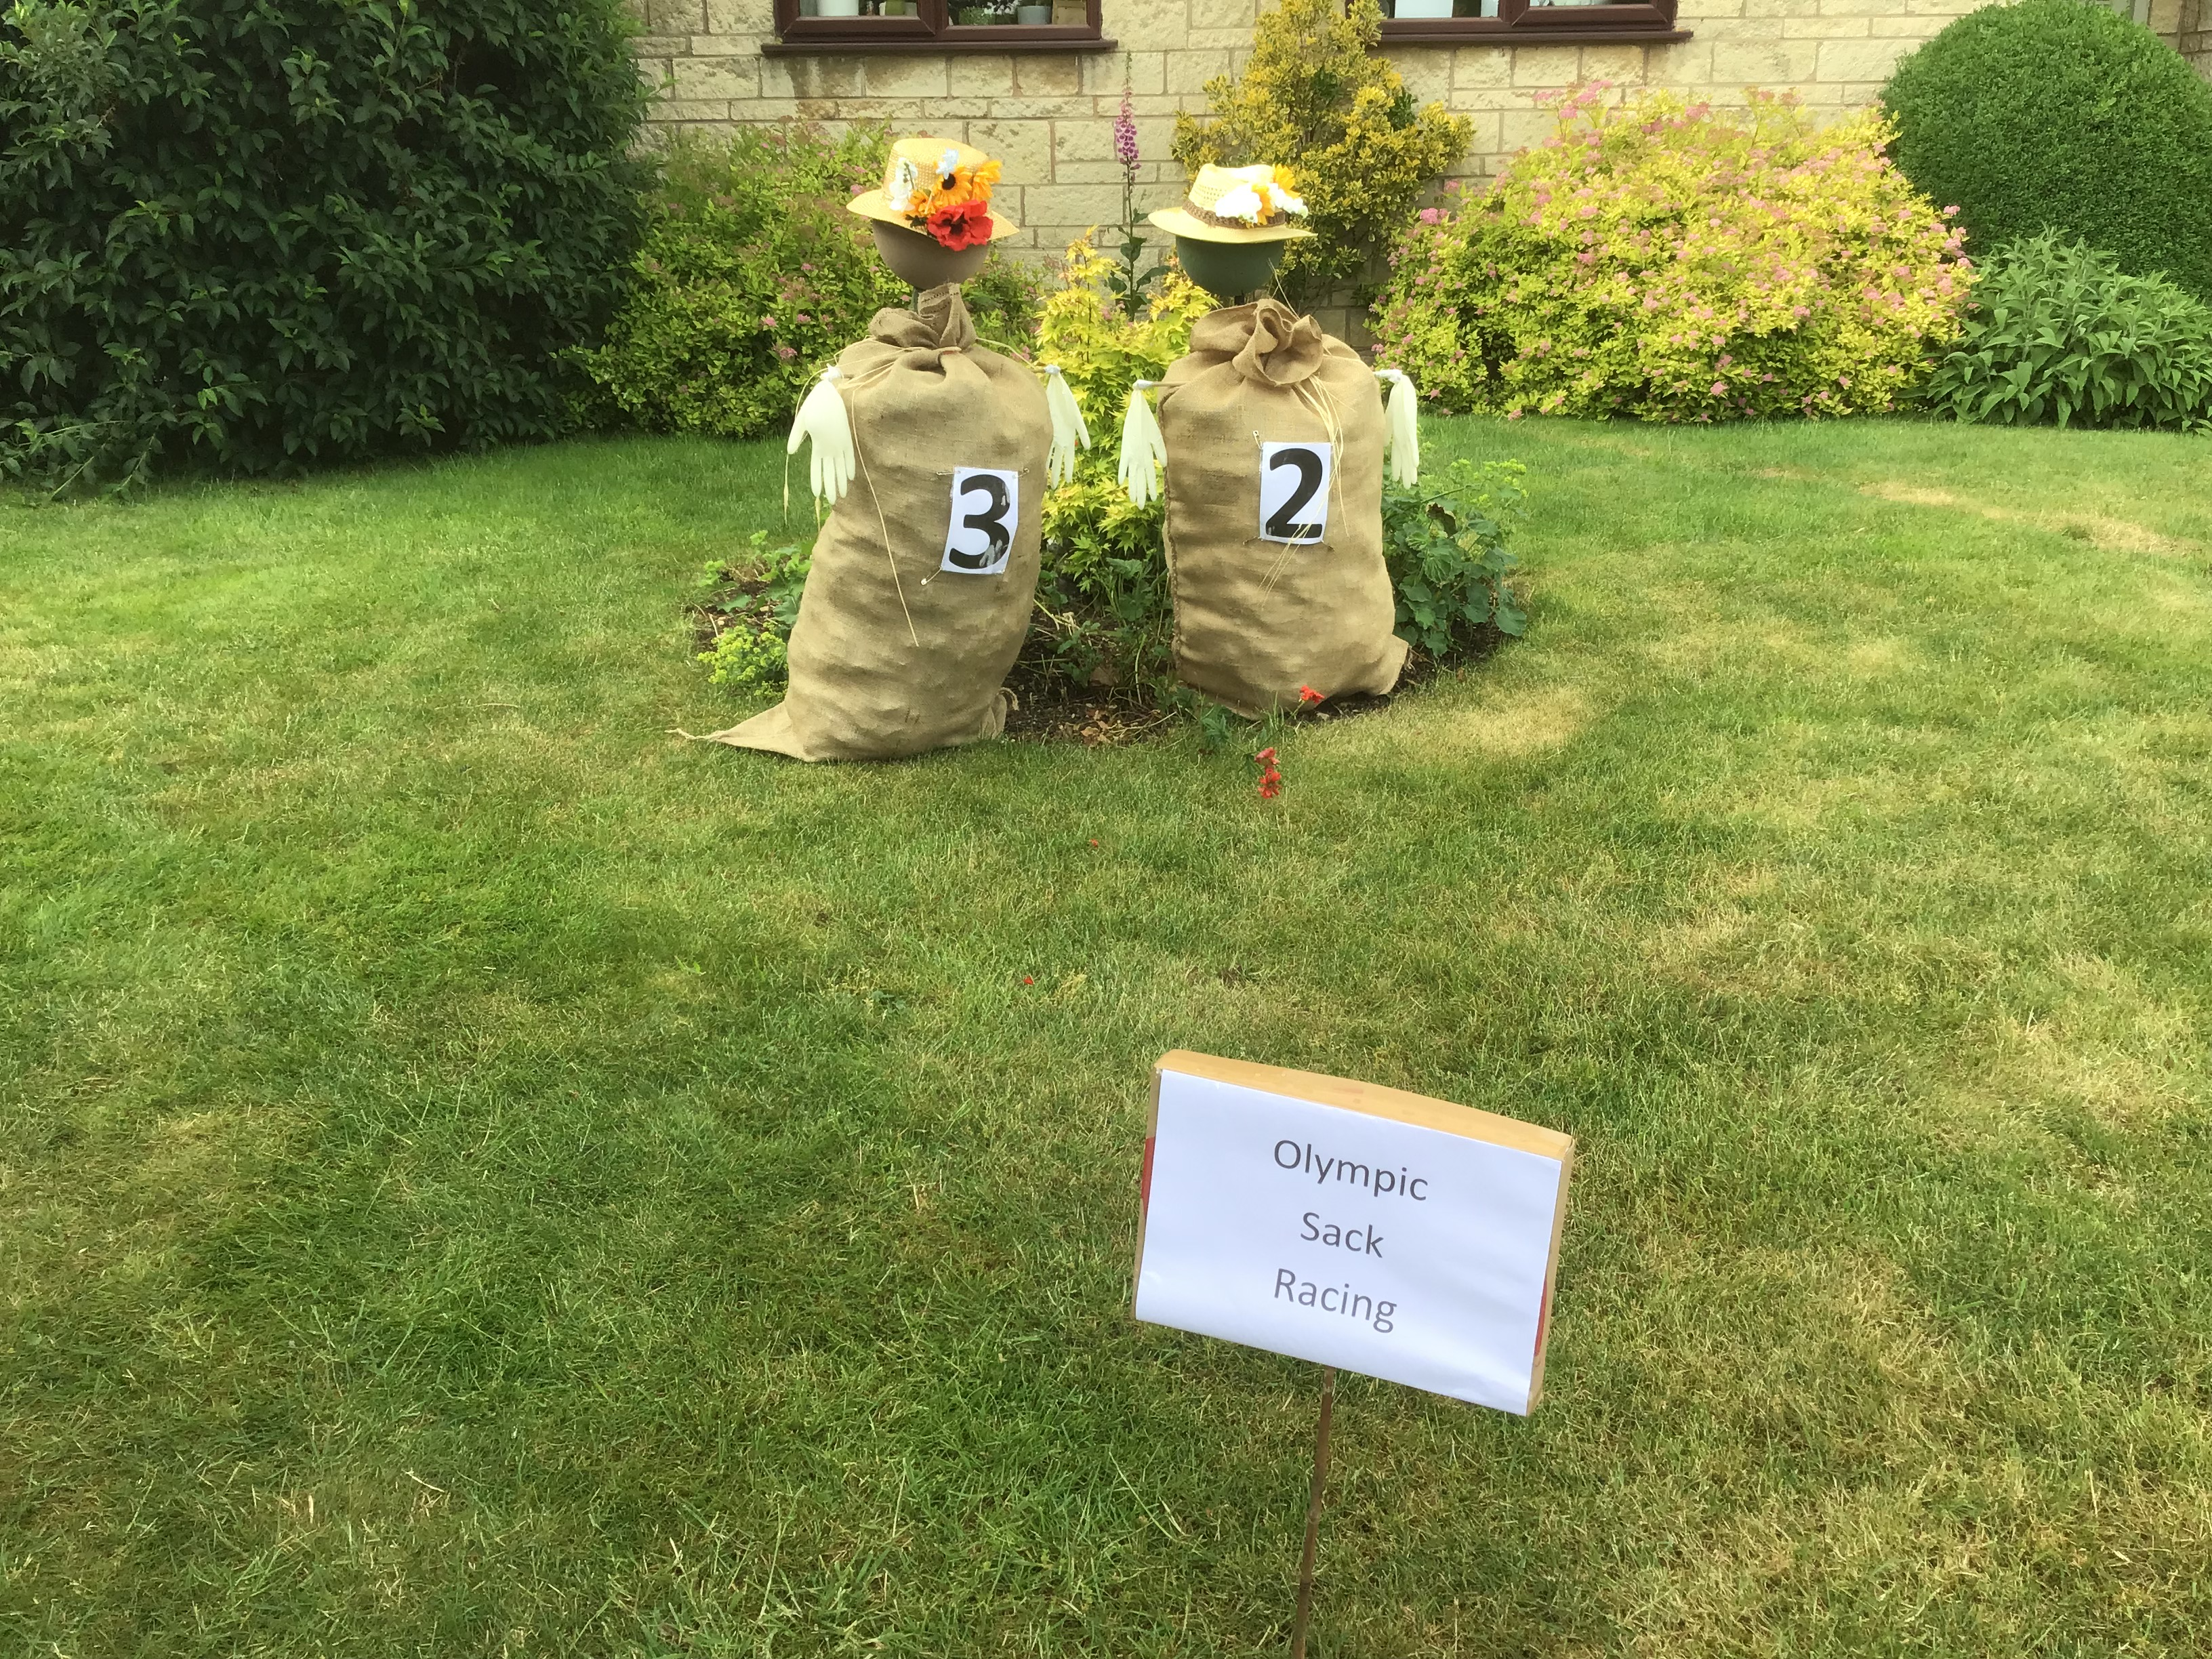 Willersey Scarecrow 31 2021